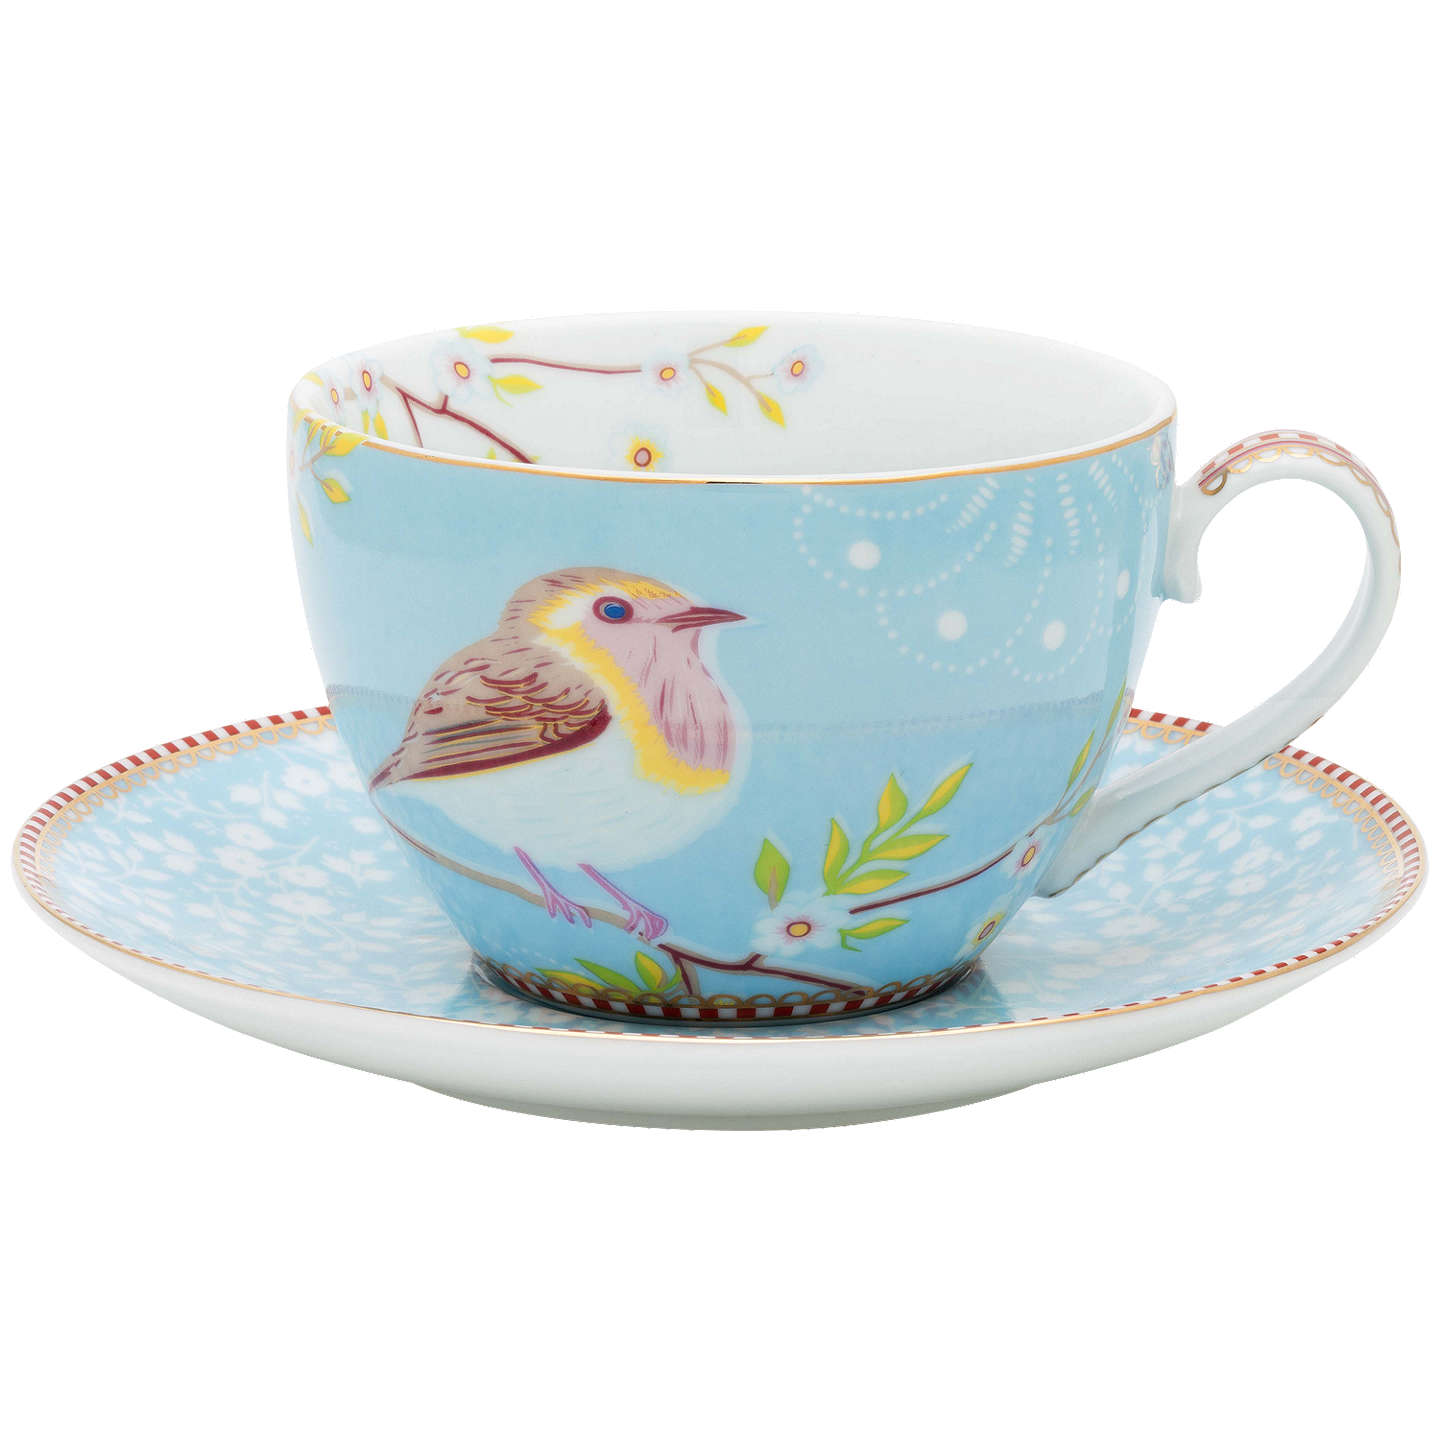 Pip Studio Early Bird Cuccino Cup And Saucer Blue Online At Johnlewis